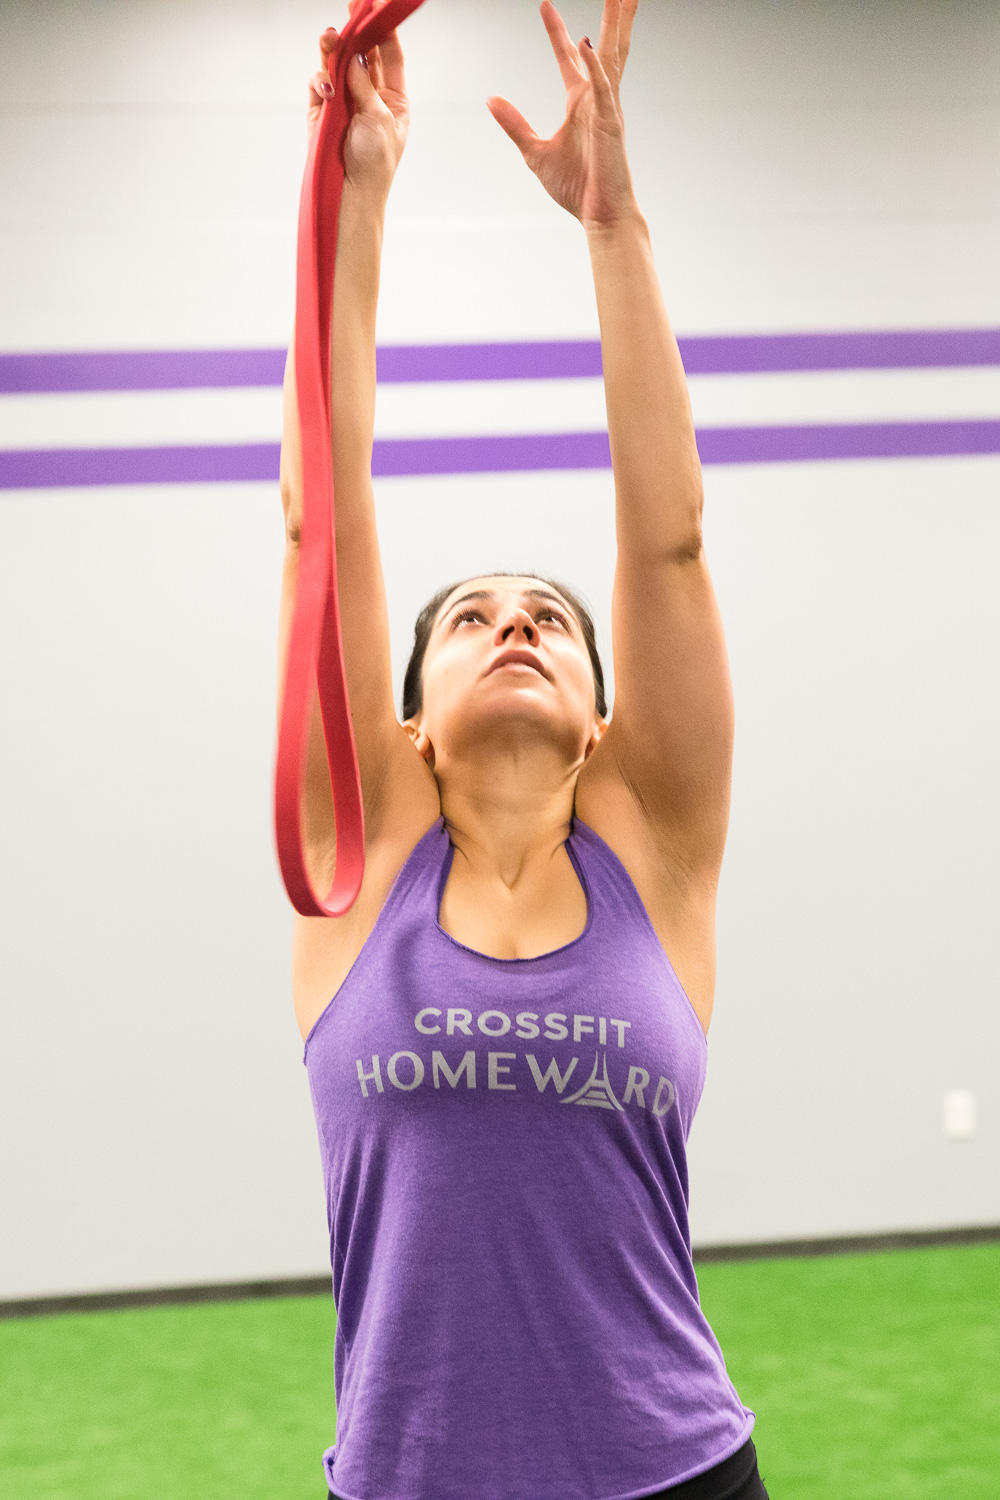 crossfit_homeward-13.jpg